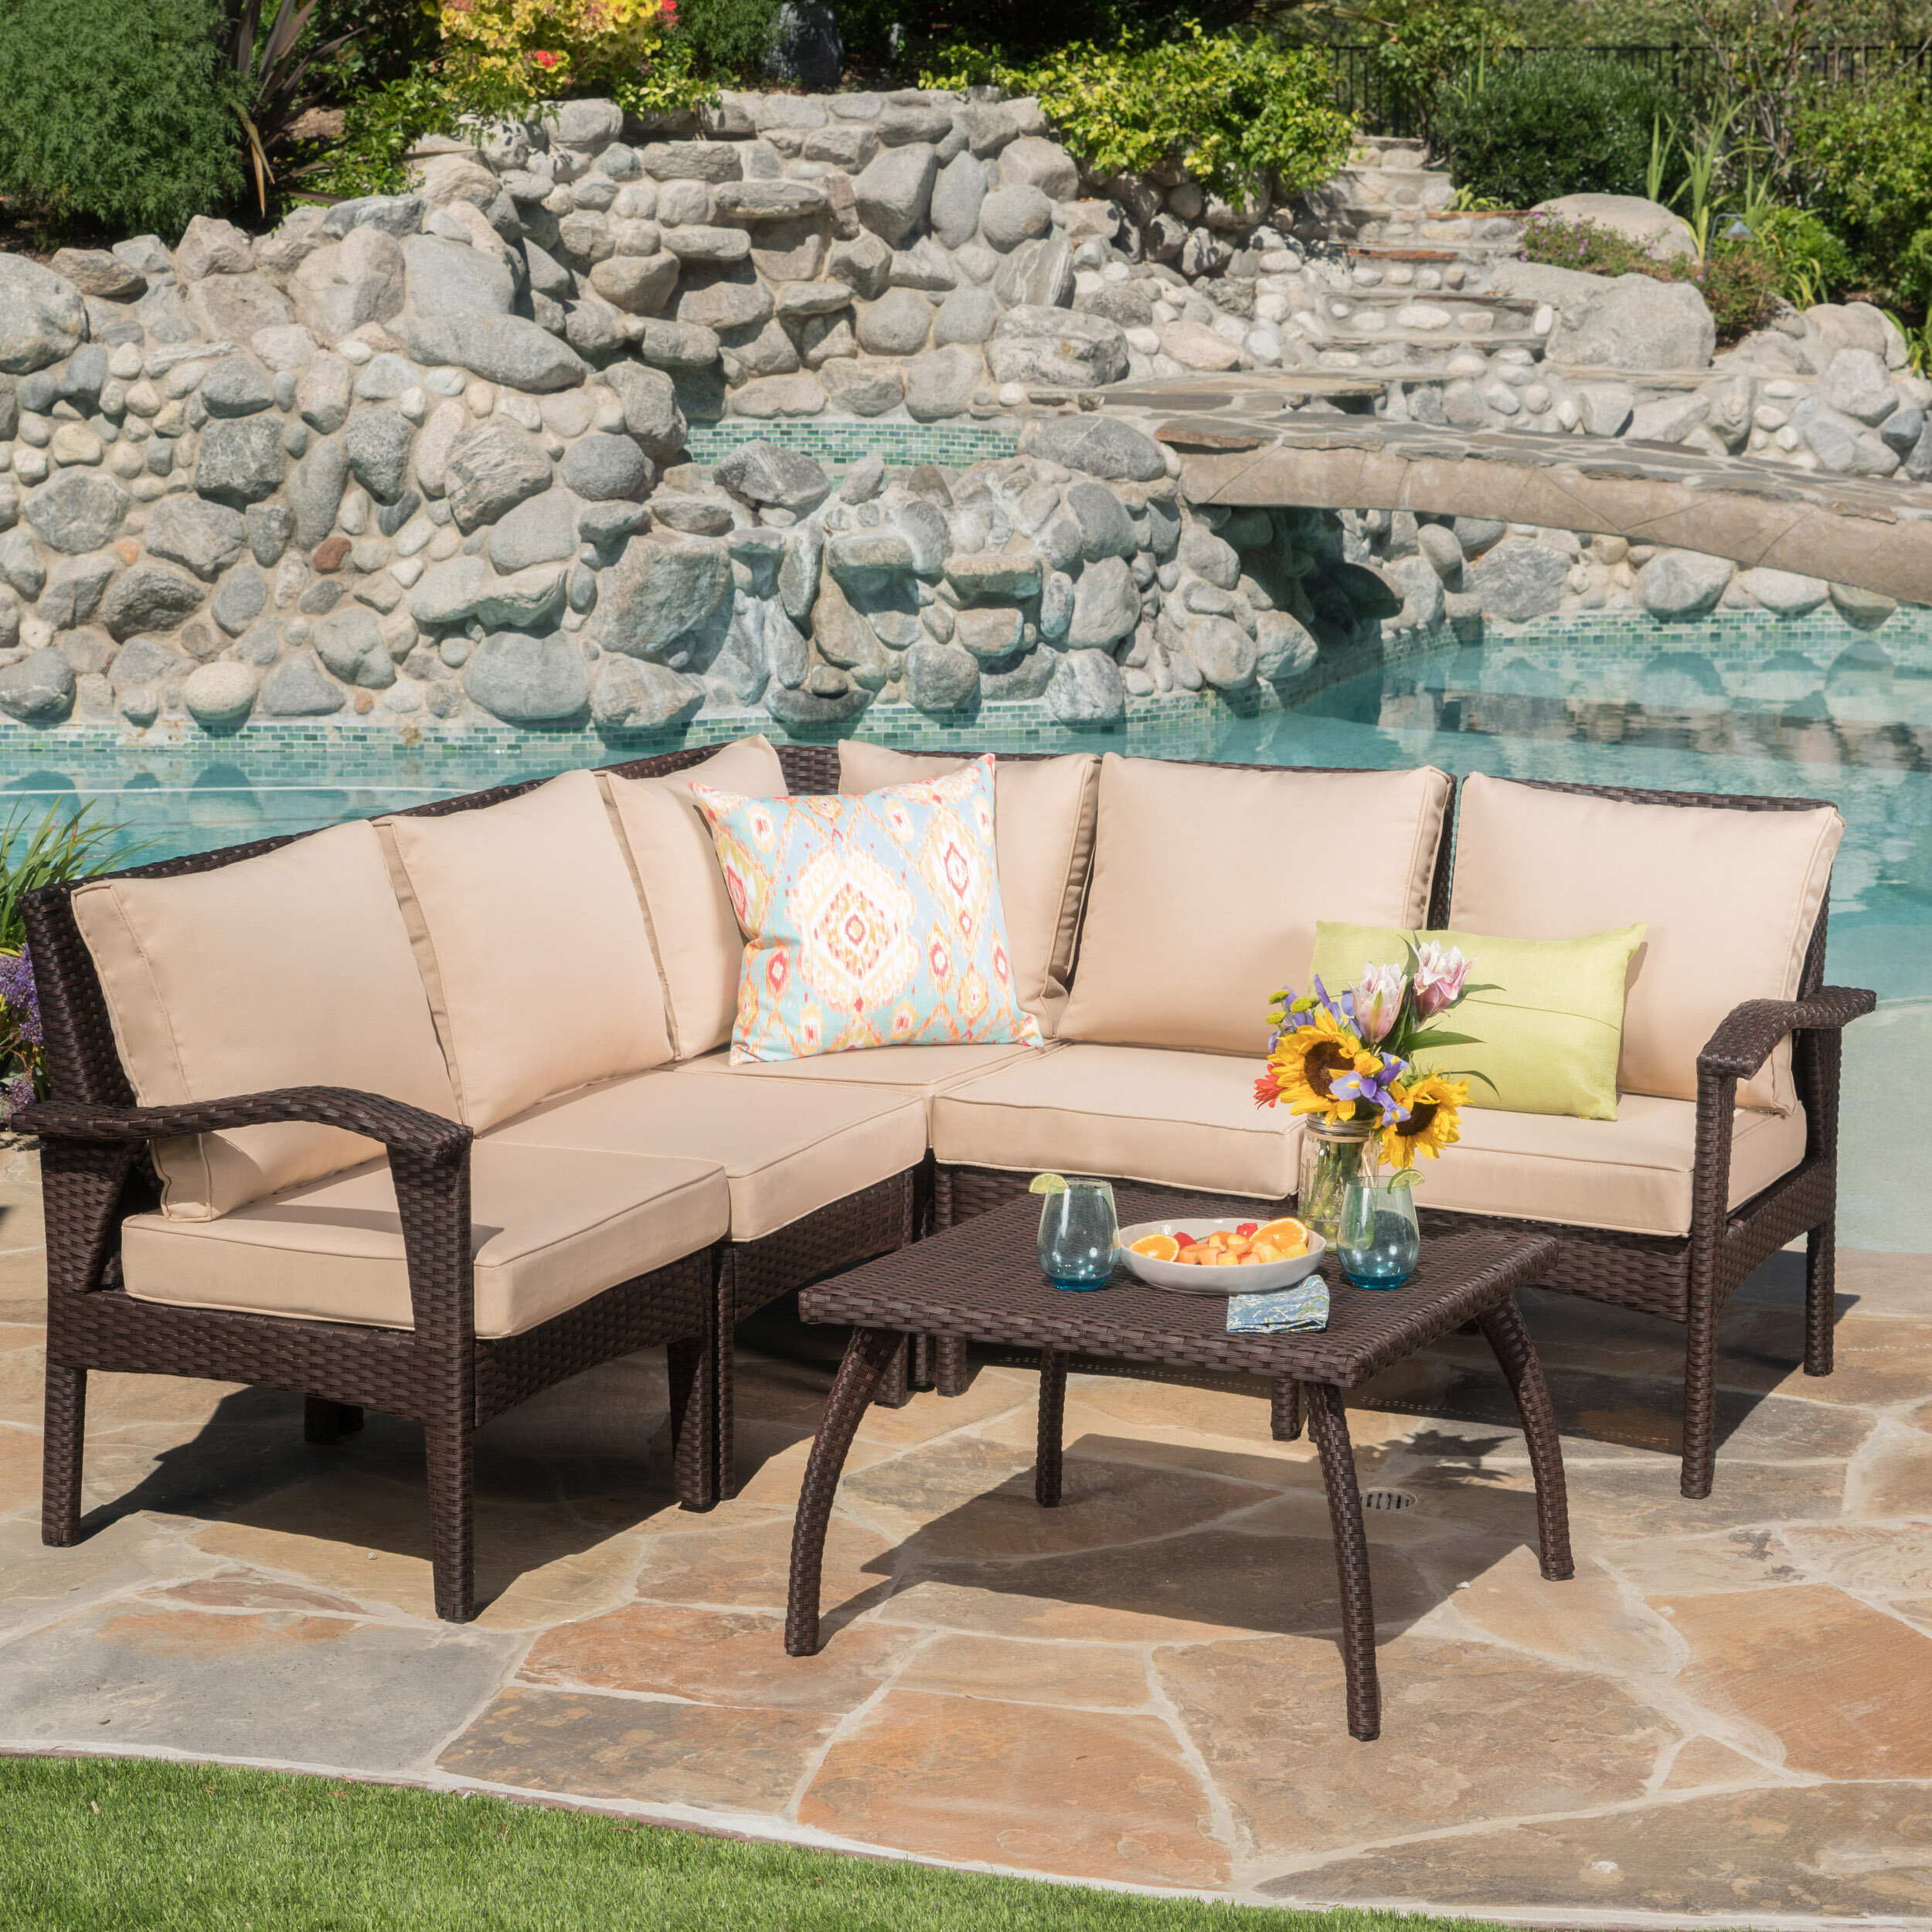 Beachcrest Home Townsend 6 Piece Sectional Set With Cushions Reviews Wayfair